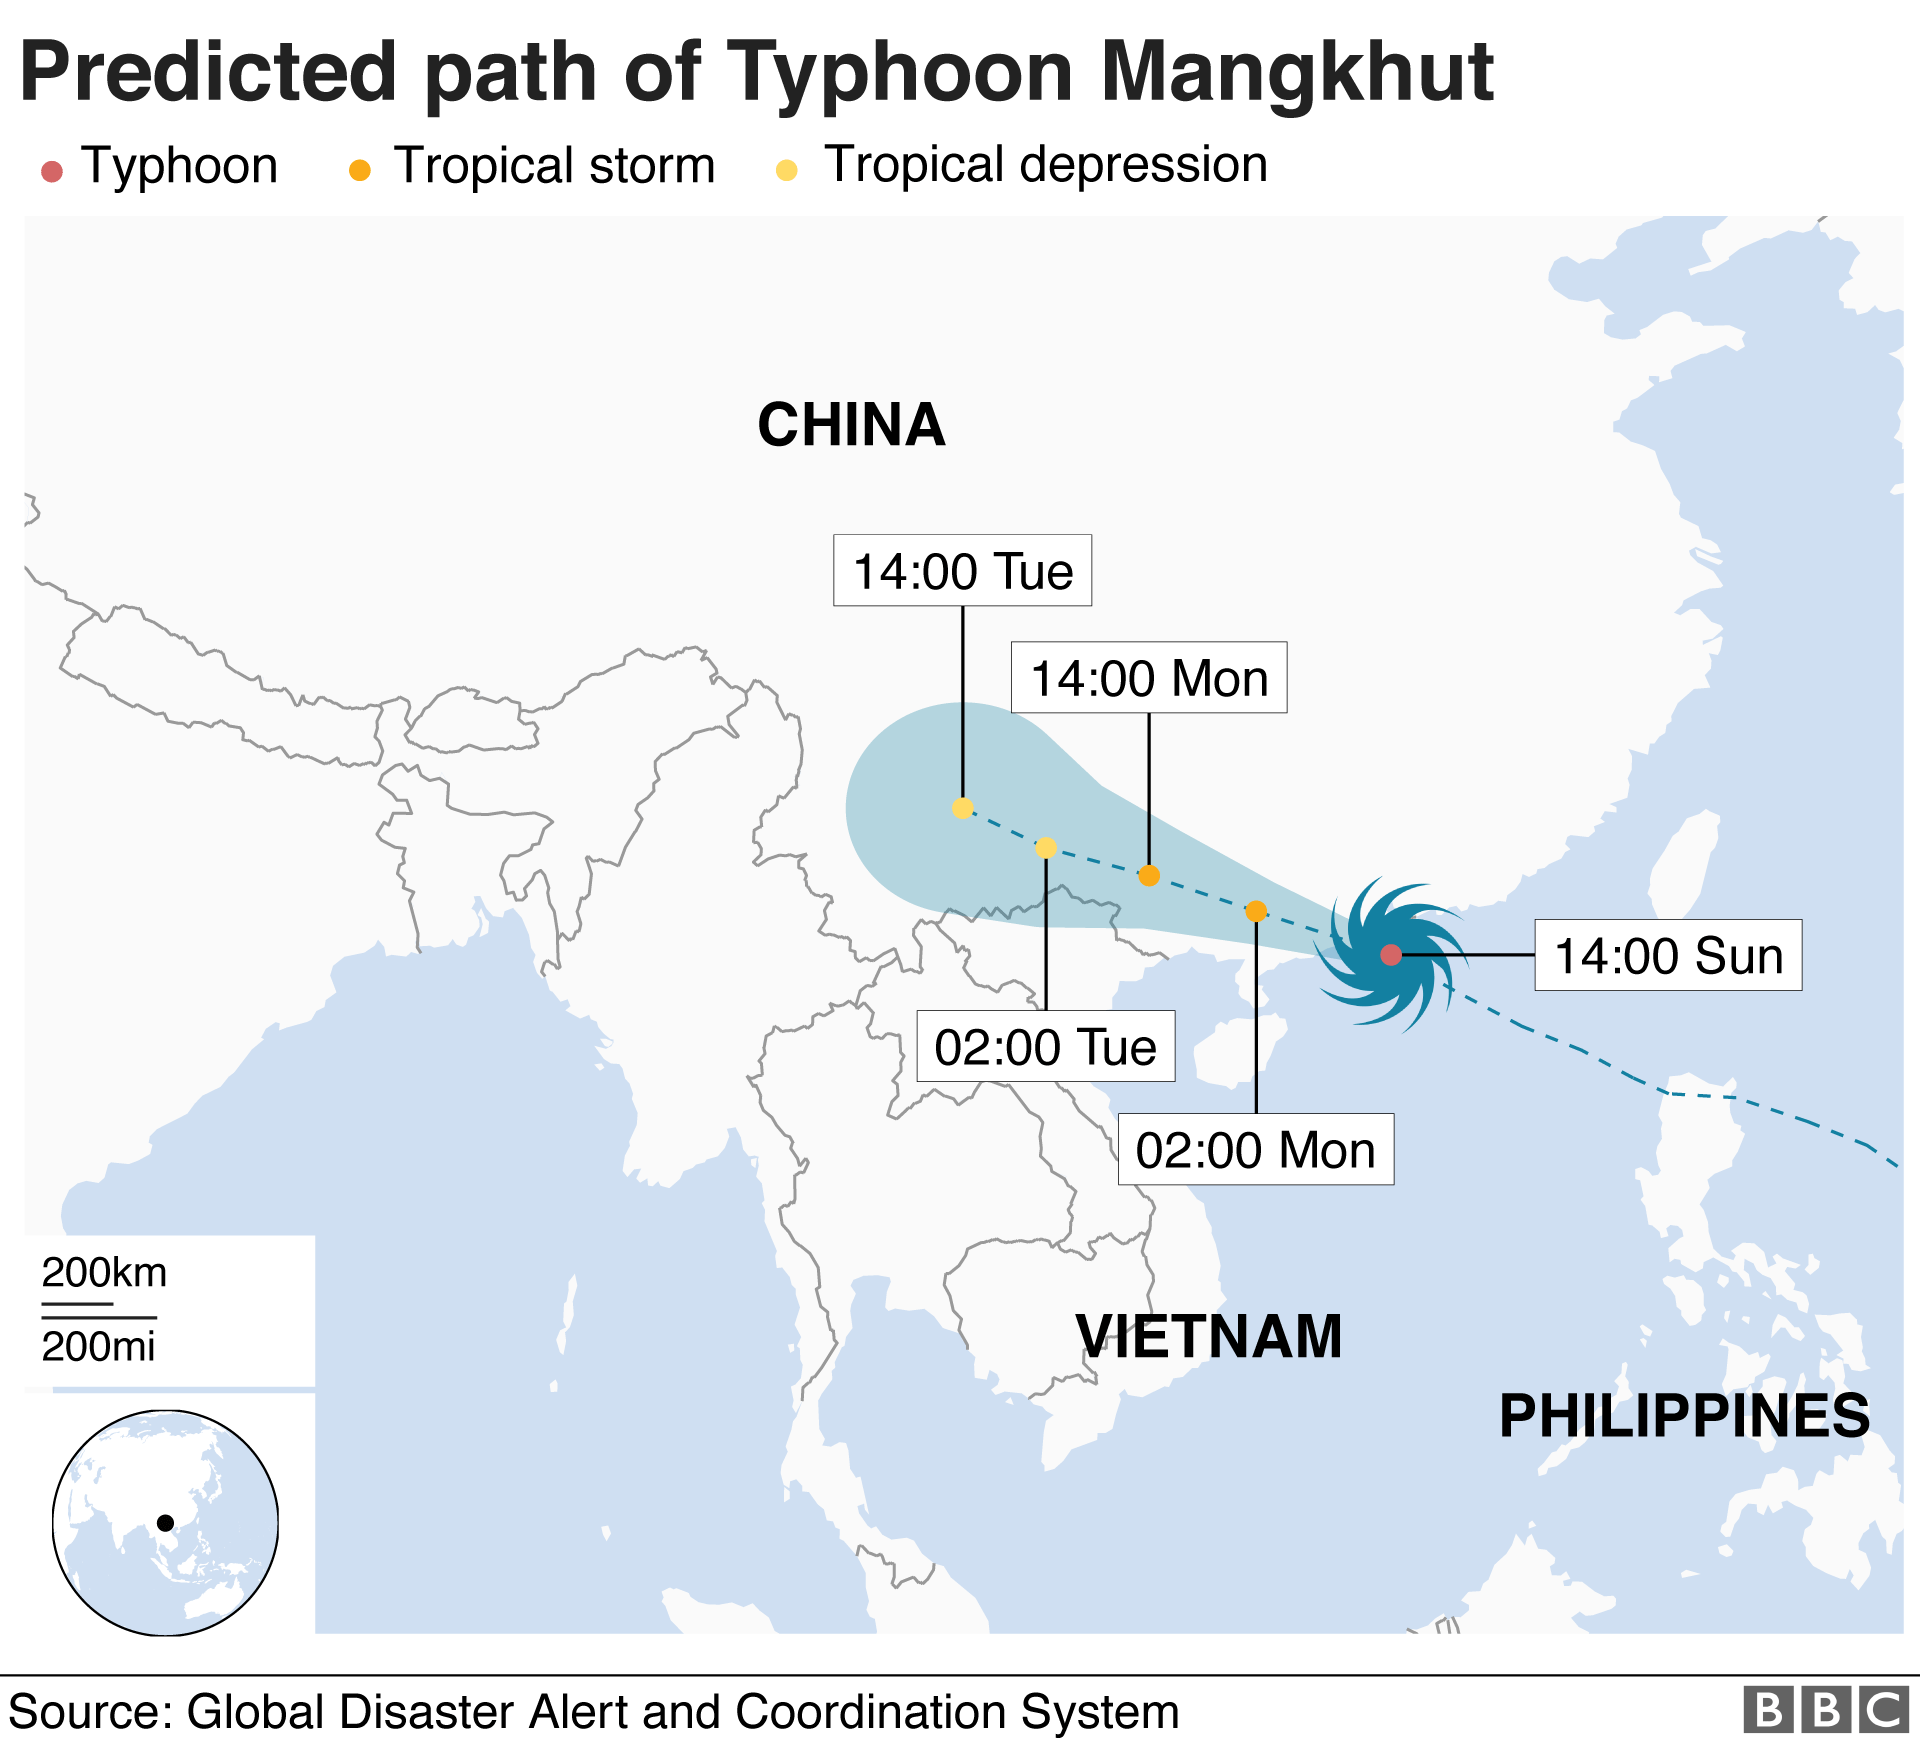 Predicted path of Typhoon Mangkhut, 1400 GMT, 16 September 2018